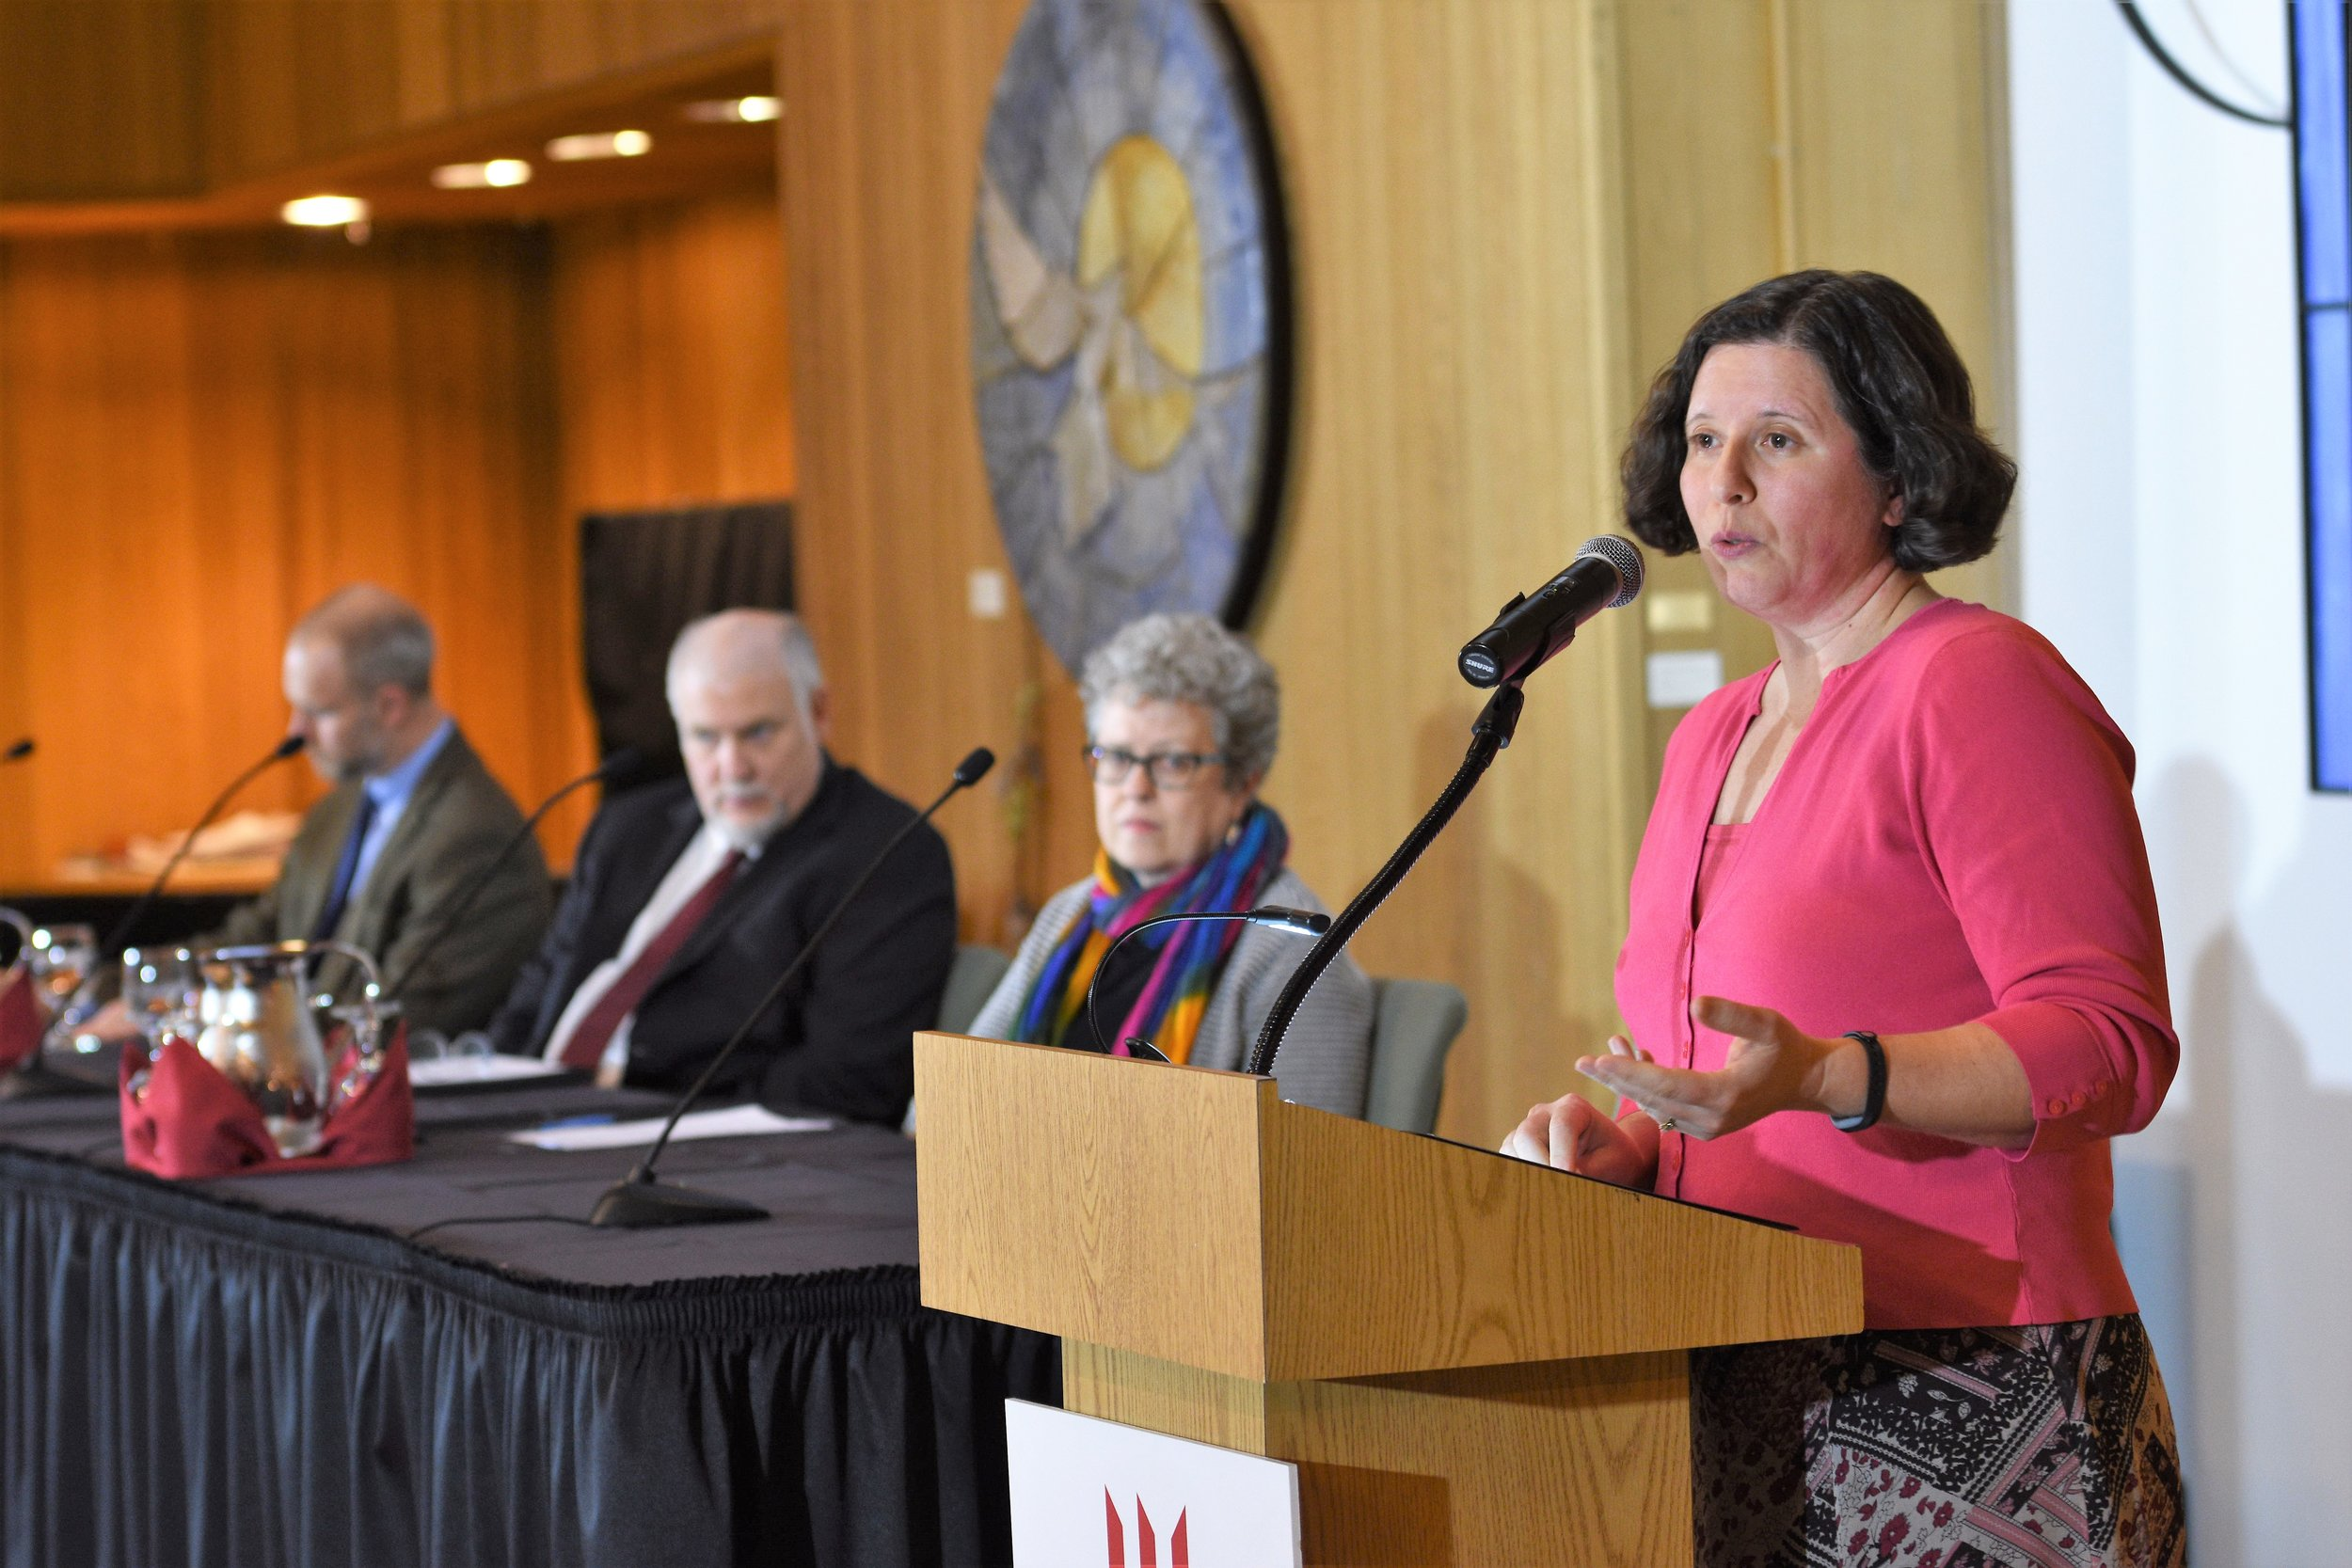 Communications professor Erica Salkin argues at the President's Colloquy on Civil Discourse that free speech should be spoken and listened to, April 16, 2018.